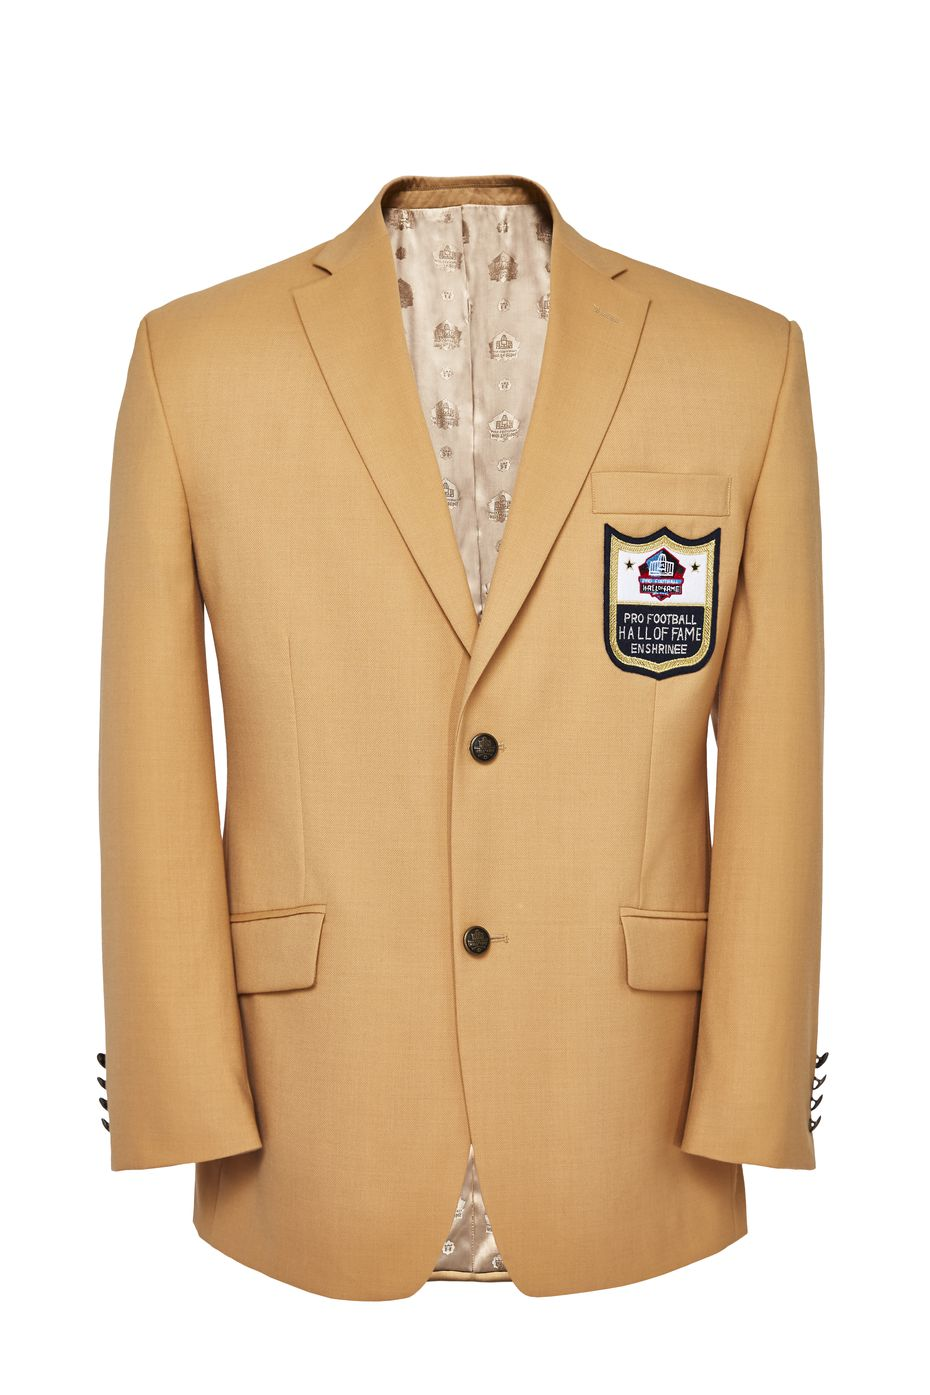 The Pro Football Hall of Fame gold jackets are made by the Haggar Clothing Co., which was founded in Dallas in 1926.